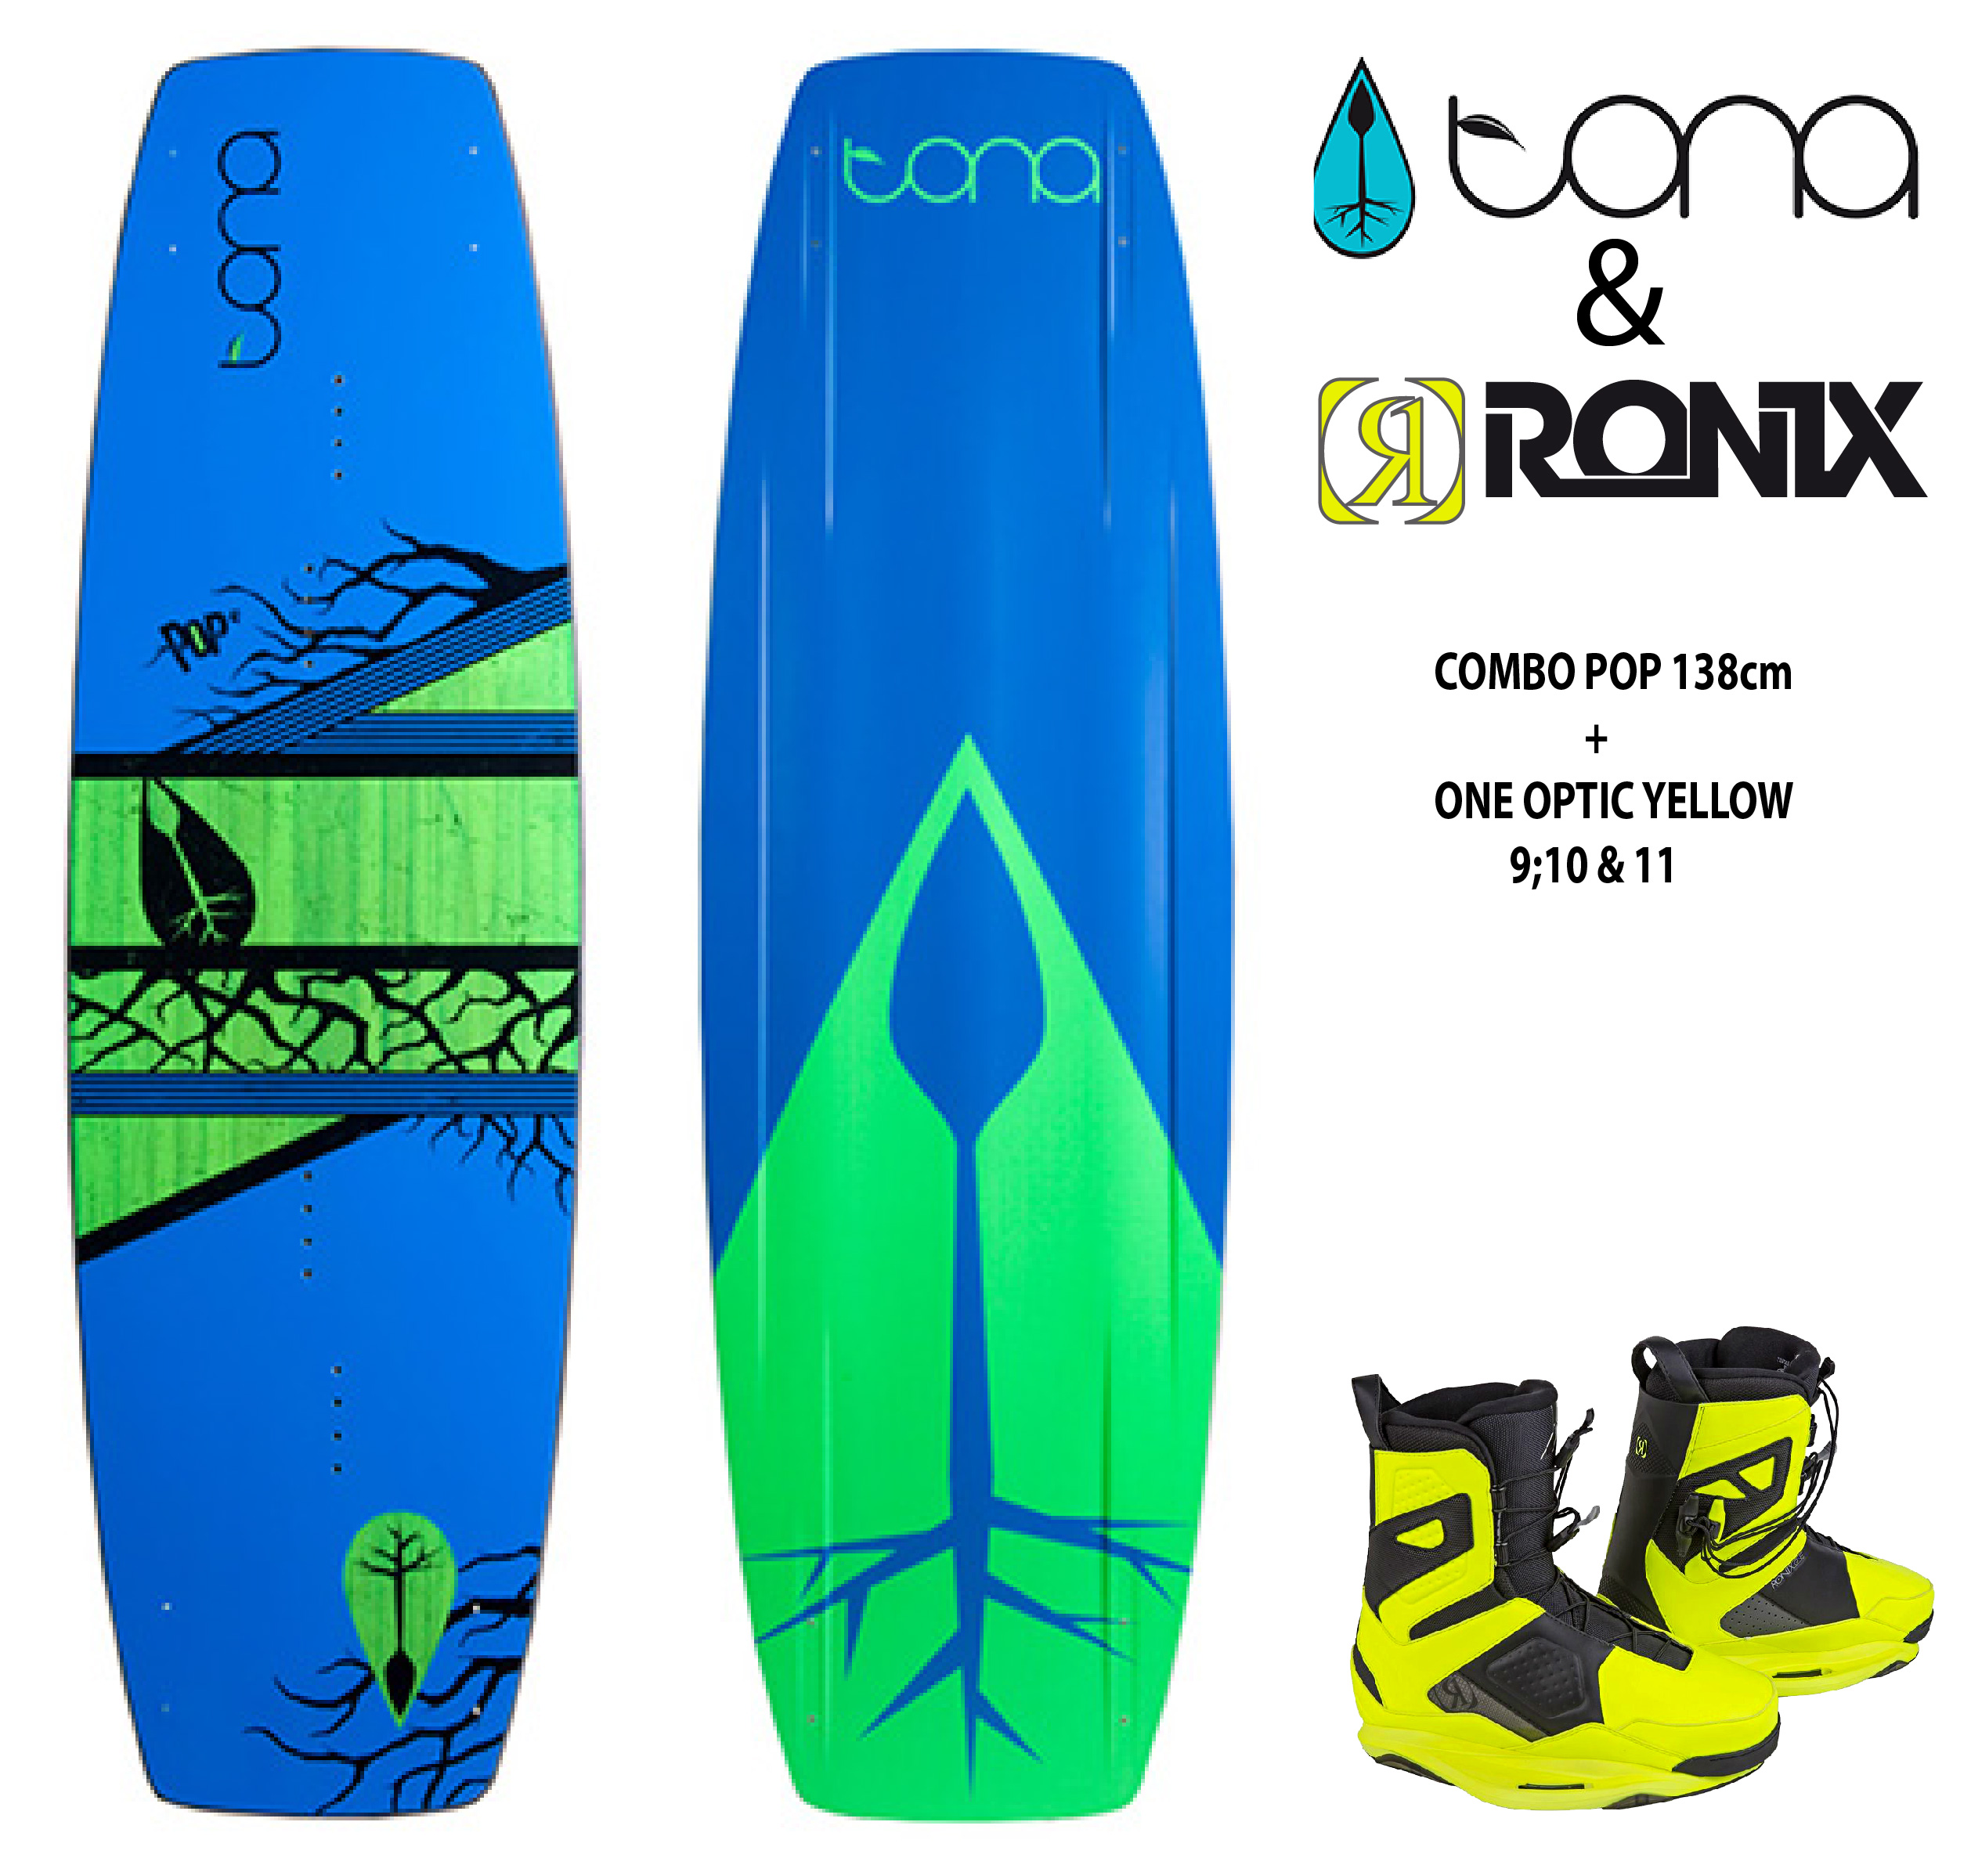 Combo Tona Pop 138cm c/Ronix One Nuclear Yellow